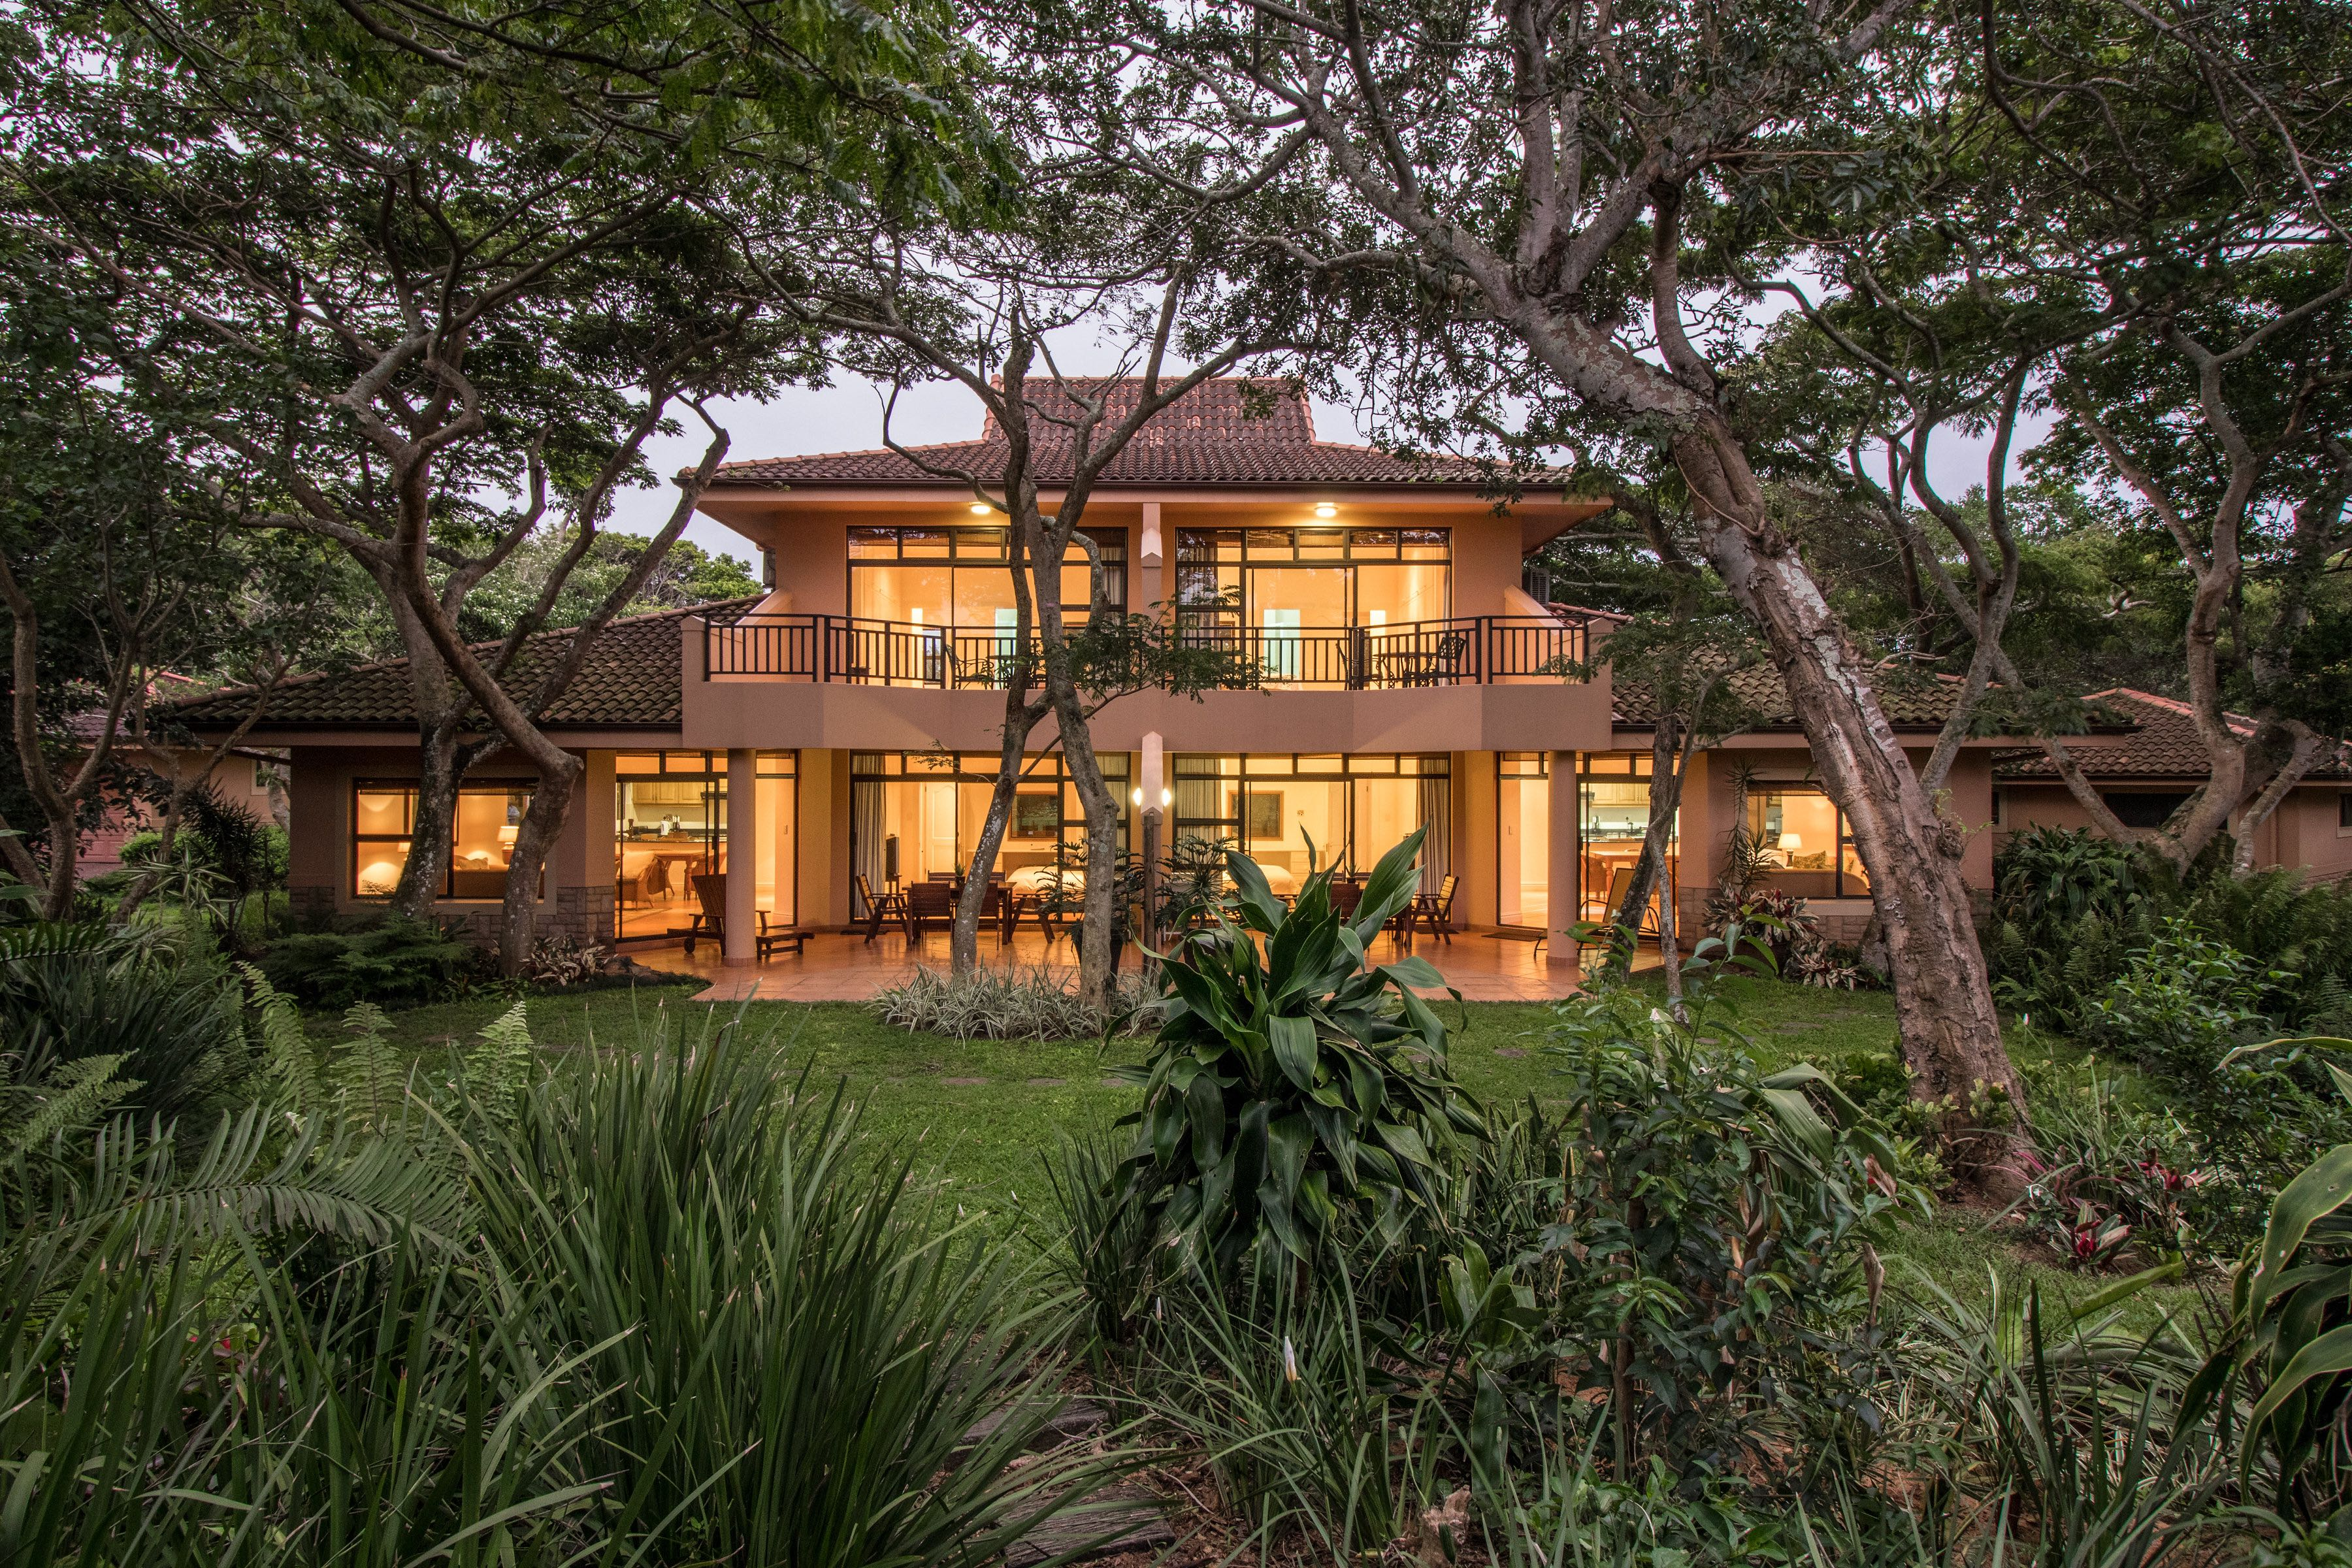 Zimbali 8 Sawubona Spacious For 5 Guests Townhouses For Rent In Dolphin Coast Kwazulu Natal South Africa